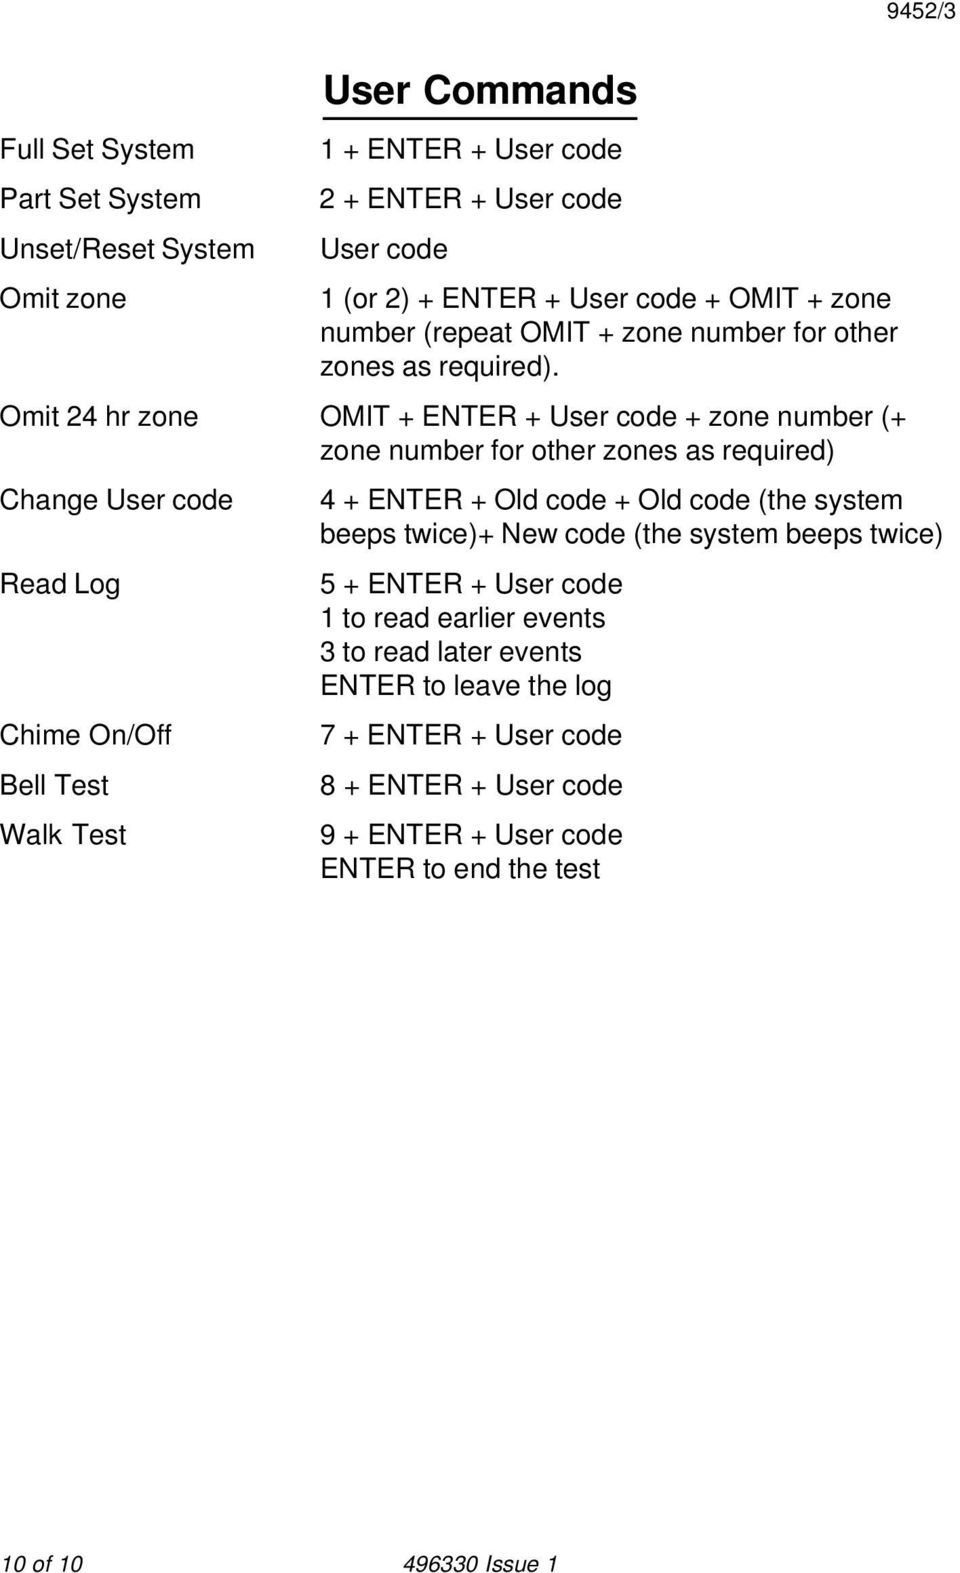 Omit 24 hr zone OMIT + ENTER + User code + zone number (+ zone number for other zones as required) Change User code 4 + ENTER + Old code + Old code (the system beeps twice)+